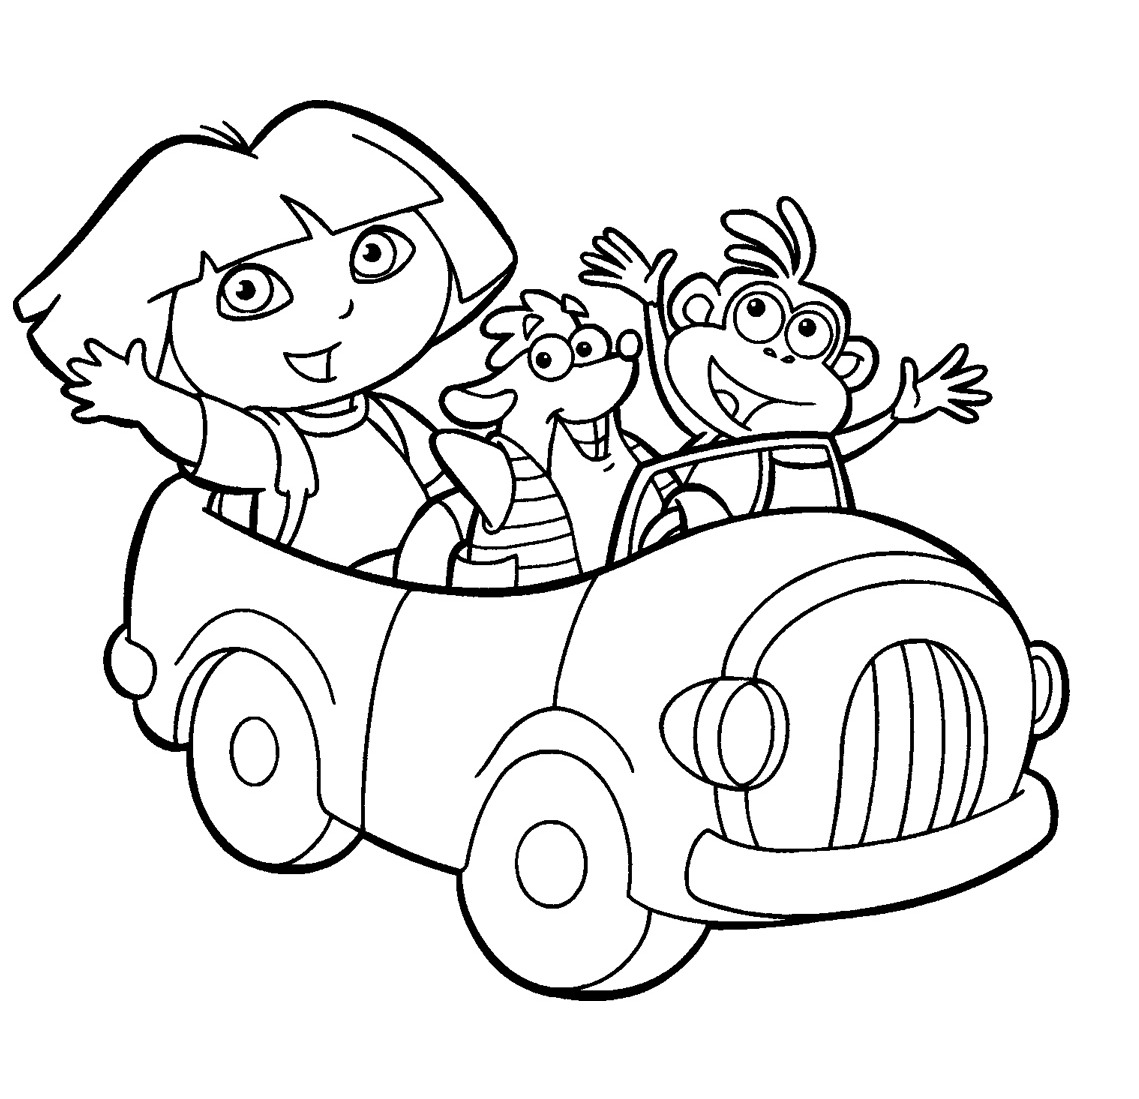 dora the explorer coloring pages | Minister Coloring